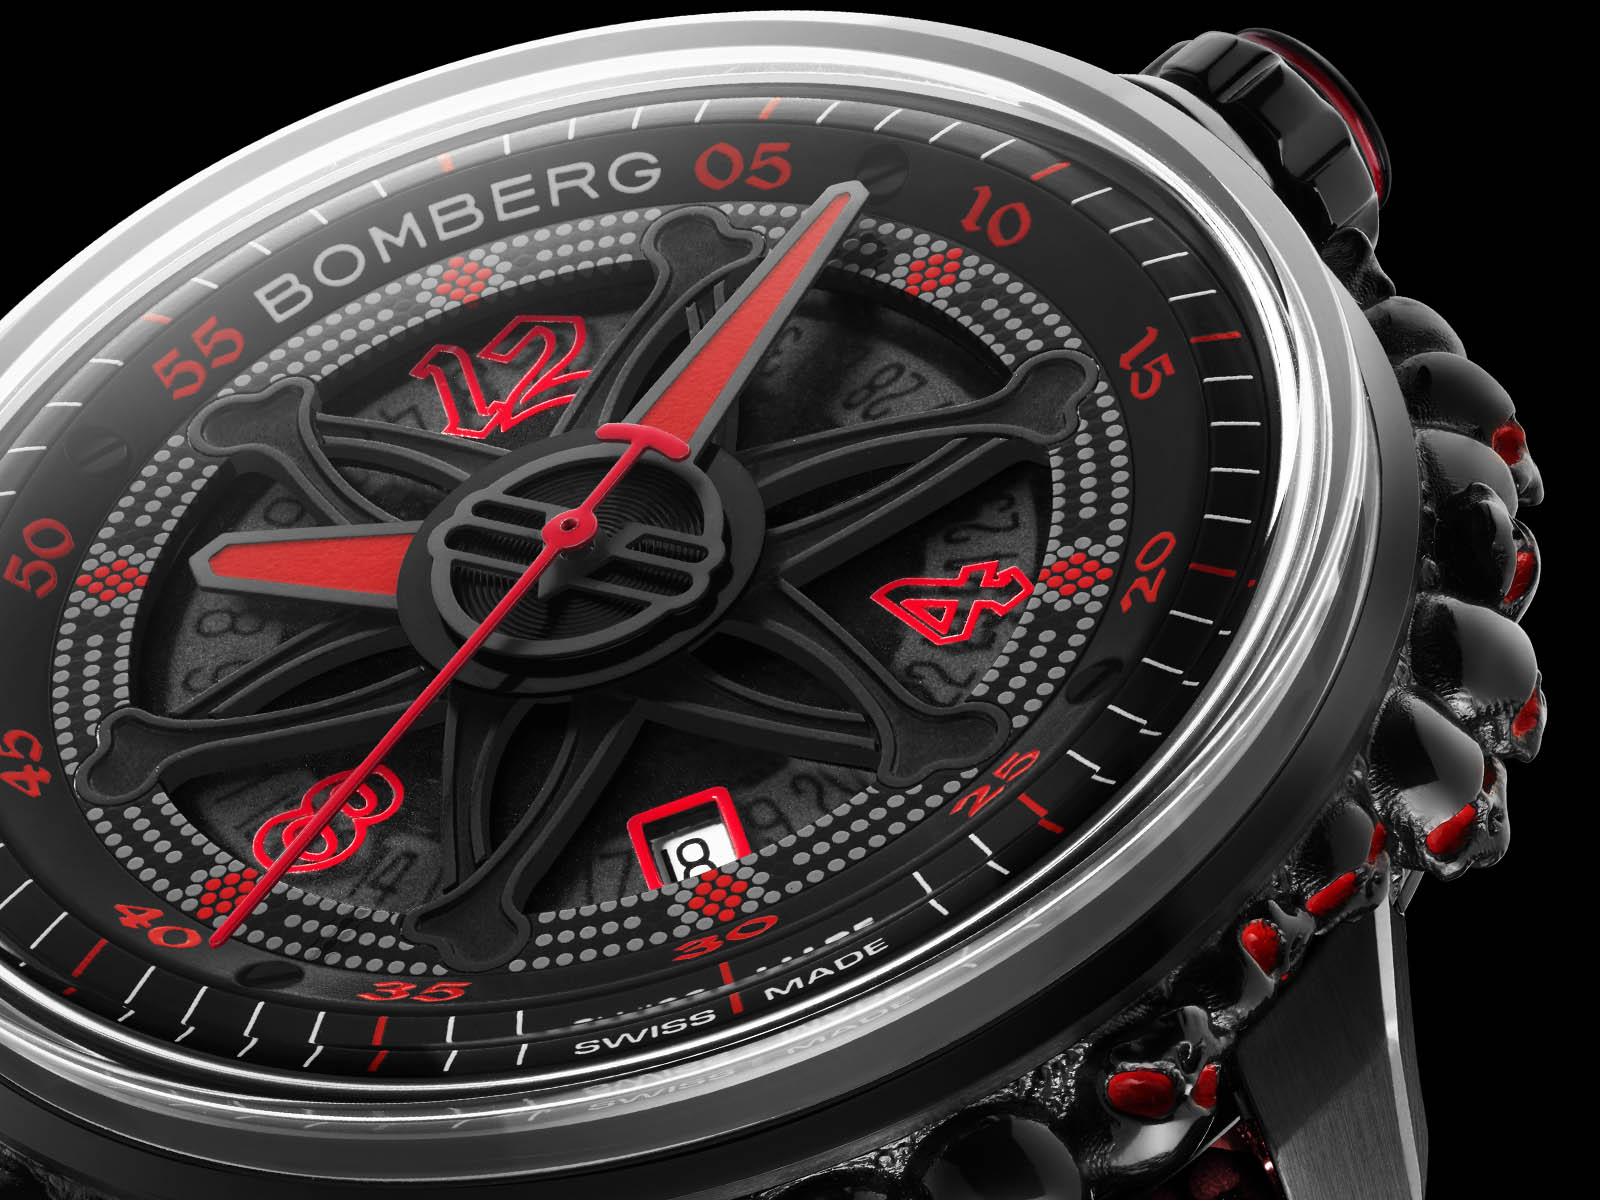 ct43apba-25-2-11-bomberg-gothic-bb-01-automatic-red-catacomb-limited-edition-2.jpg